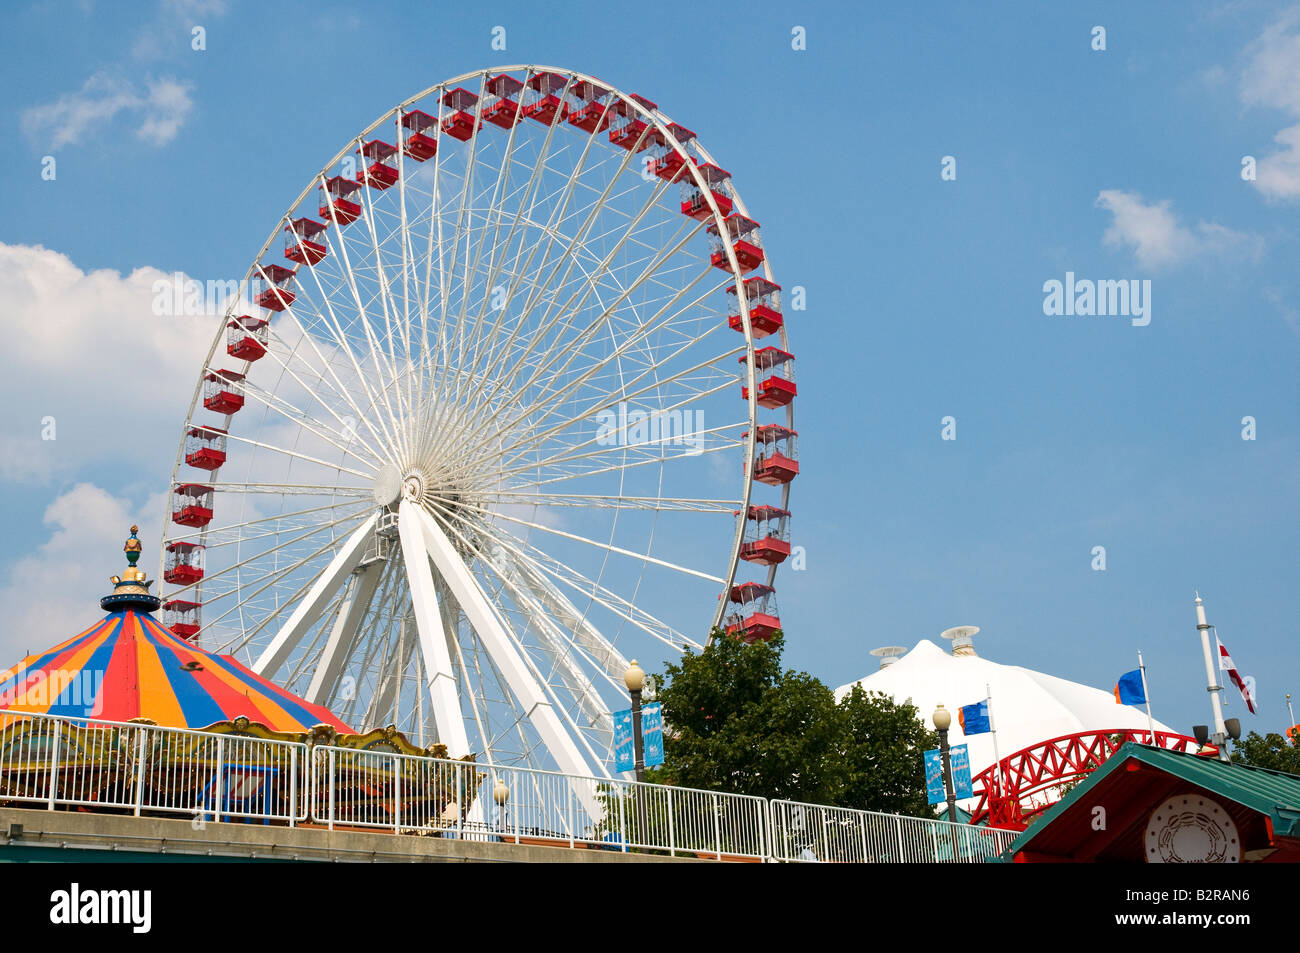 Chicago Navy Pier Ferris Wheel - Stock Image